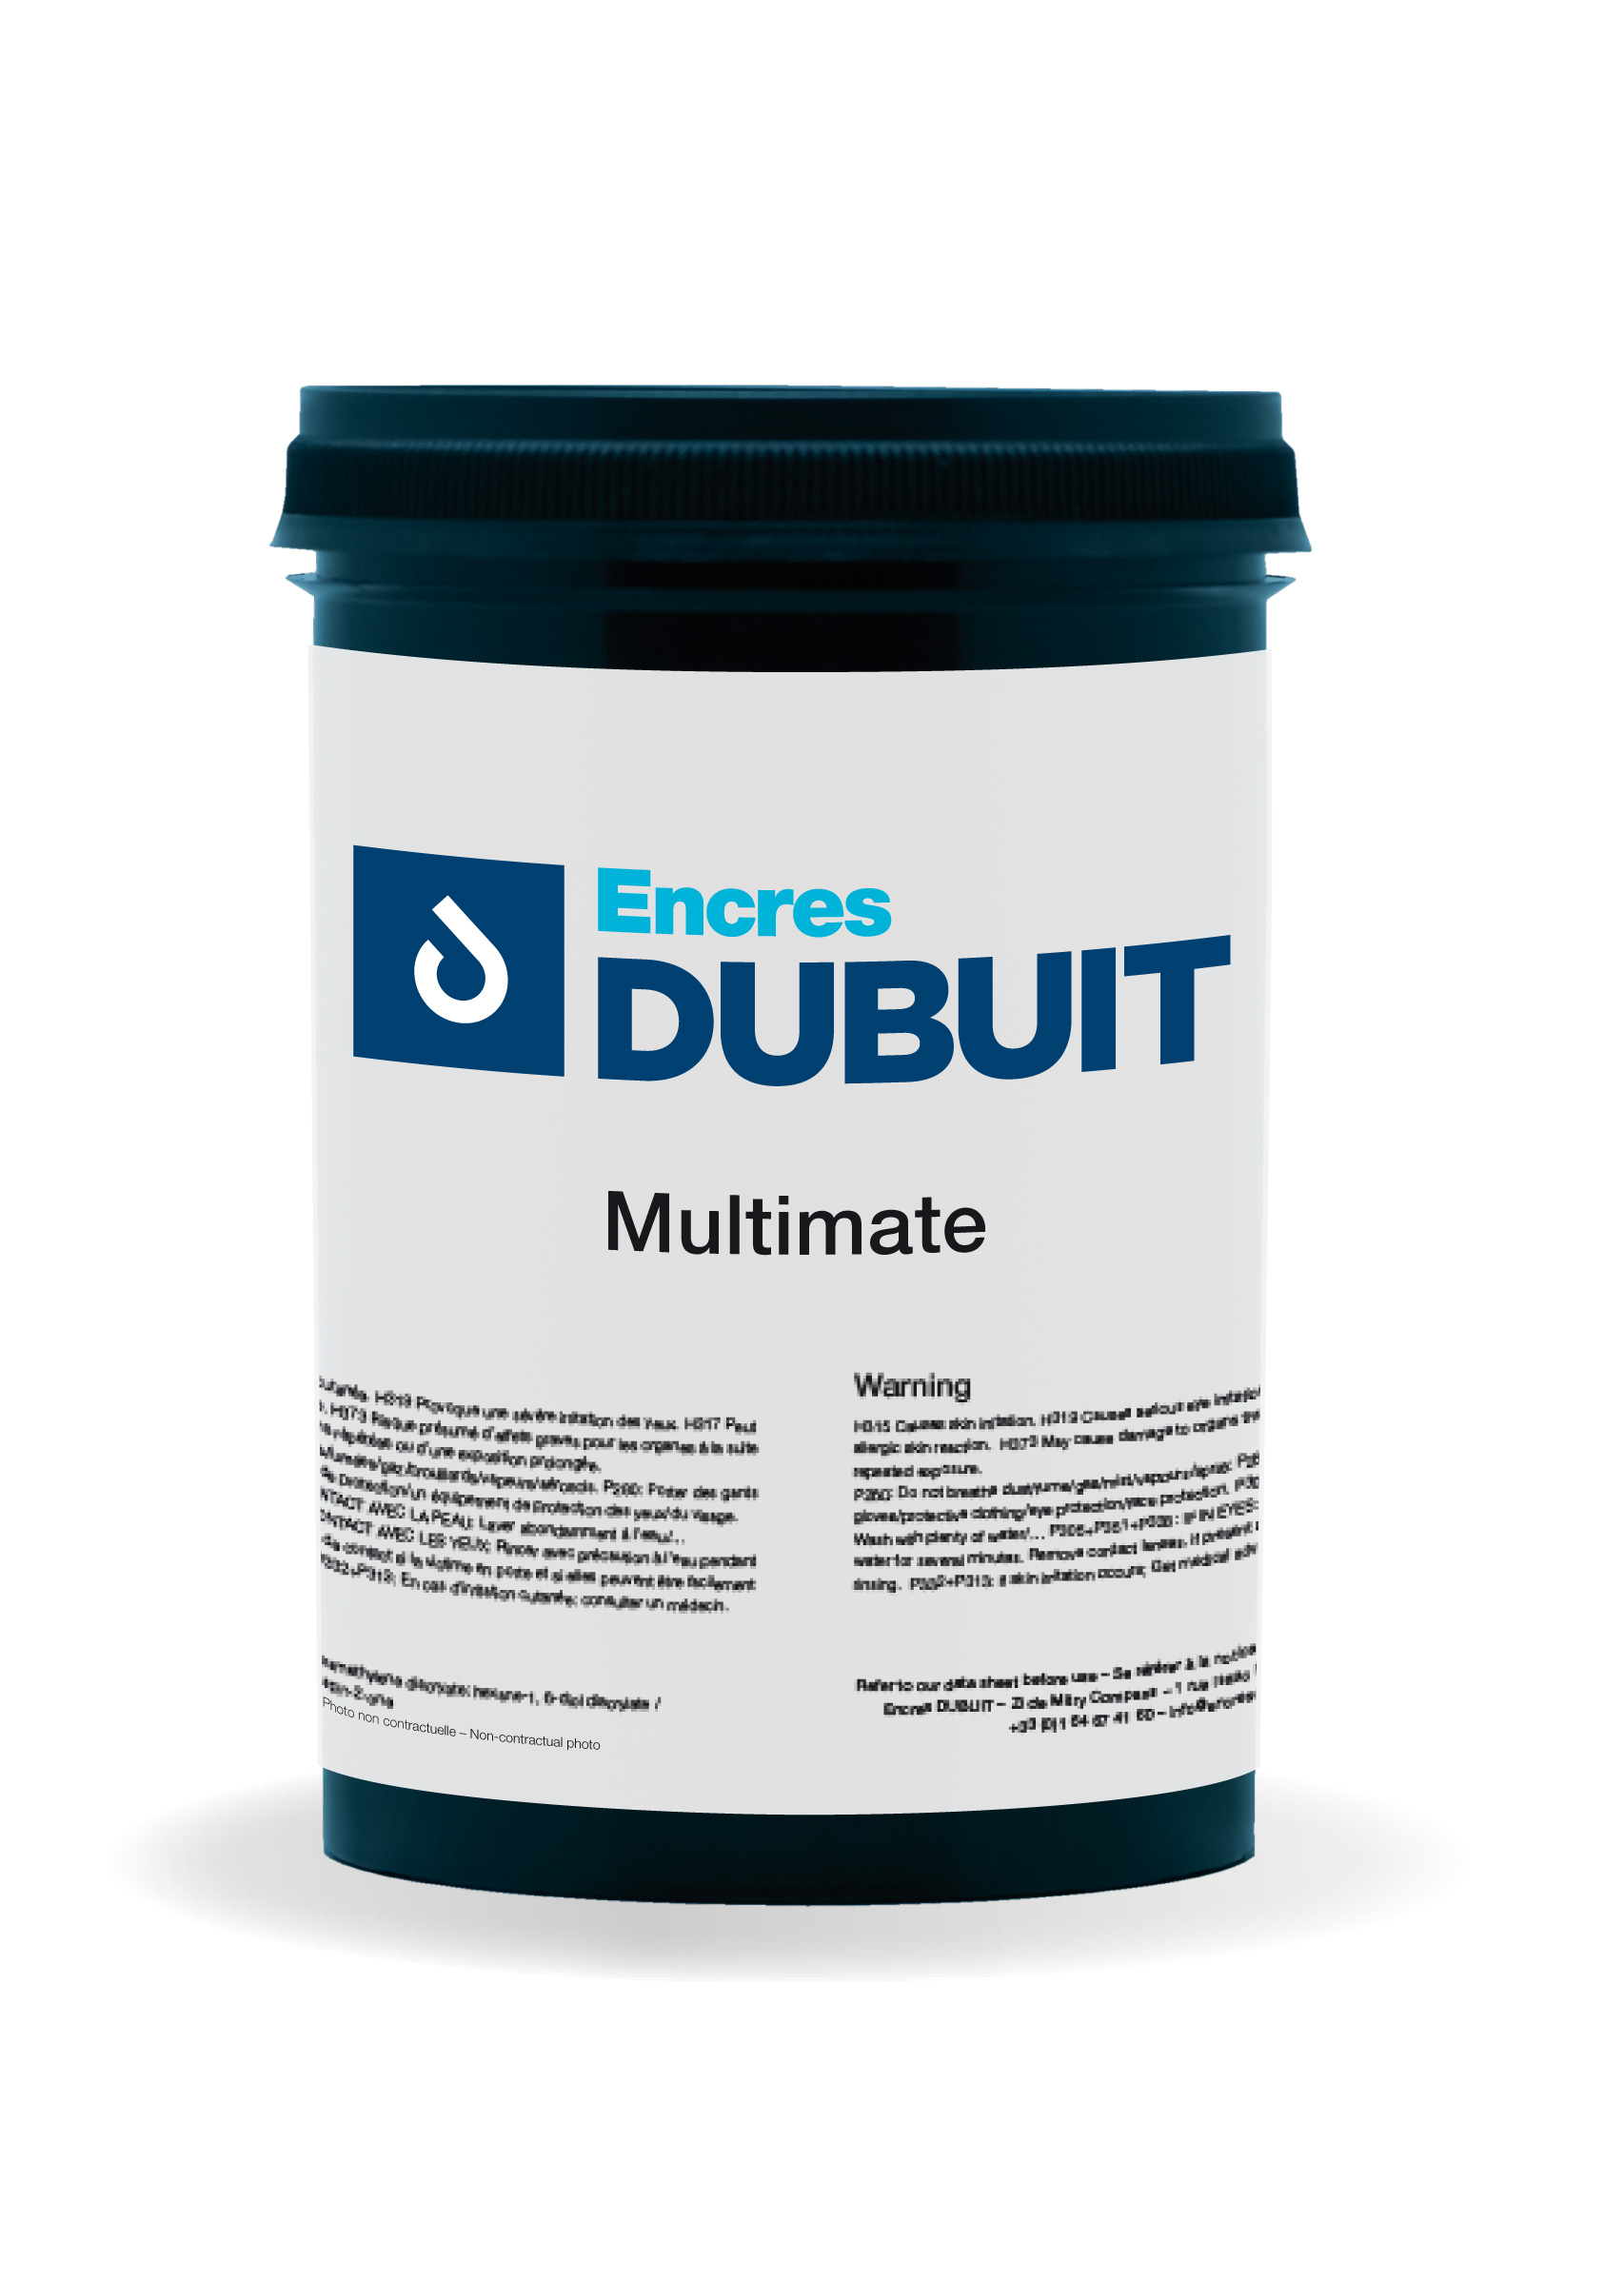 Serie Multimate Encres DUBUIT UV Screen Printing Ink